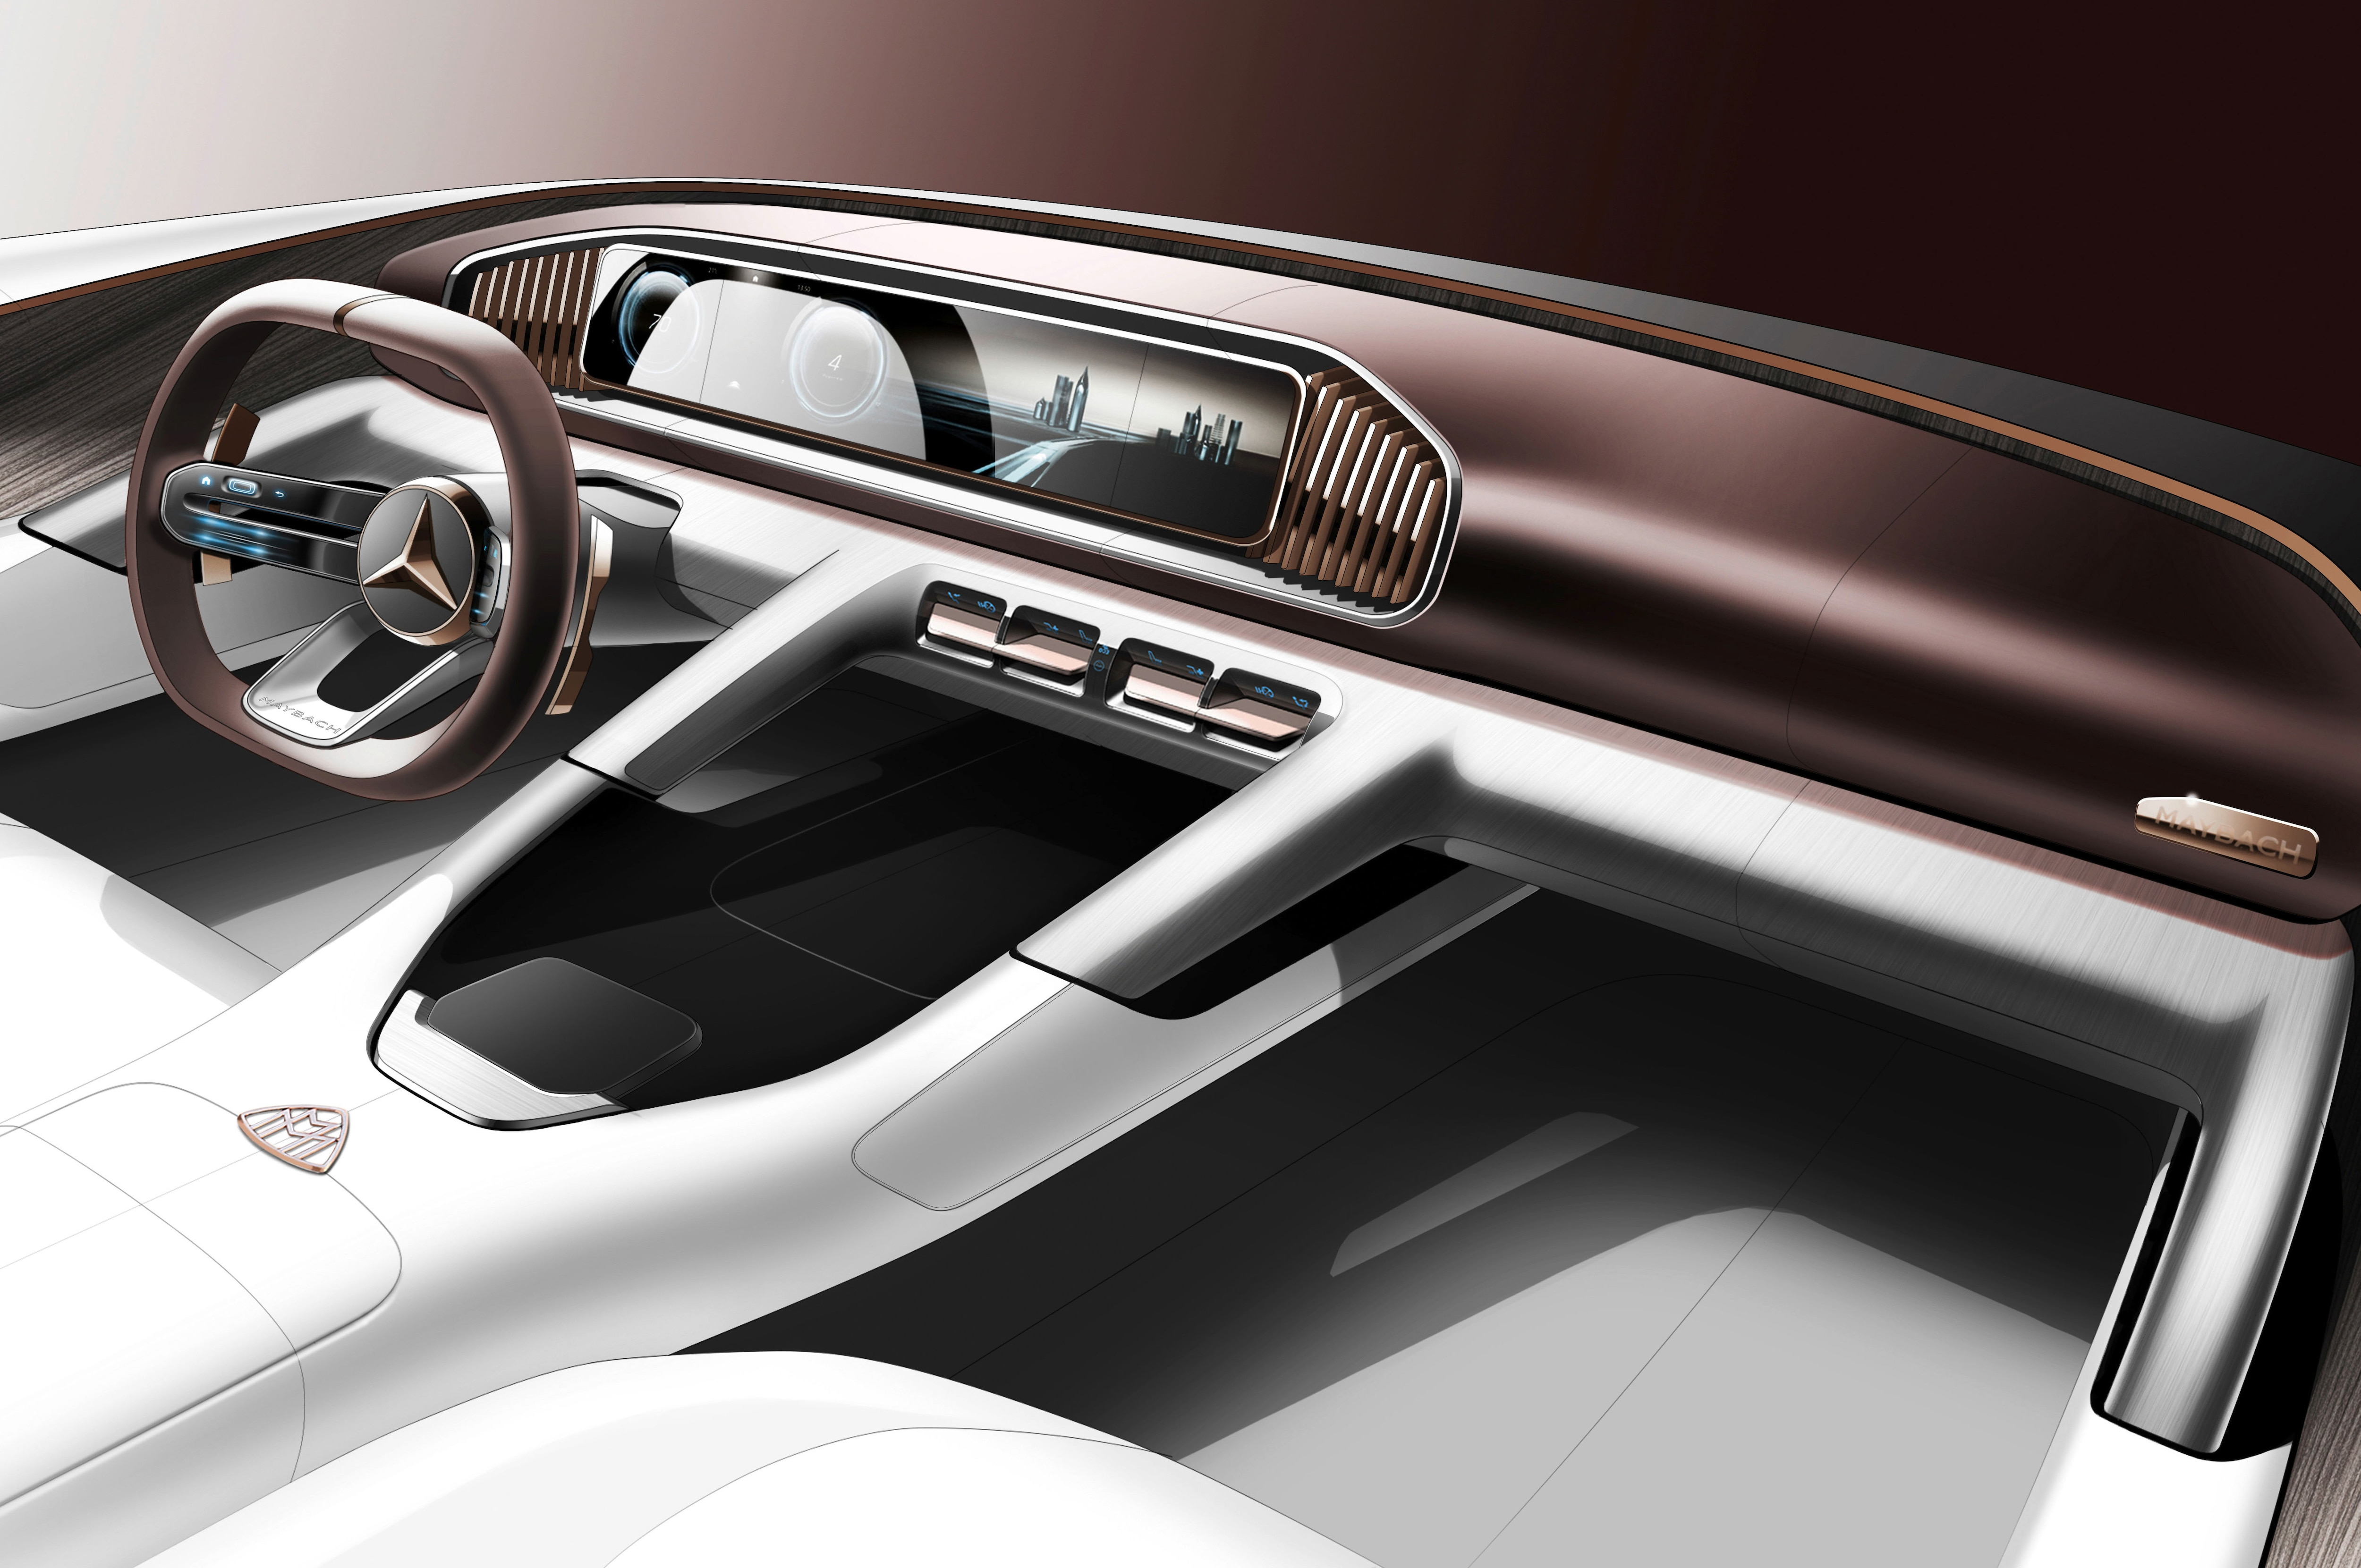 Mercedes Maybach Suv Concept S Interior Looks Sketchy